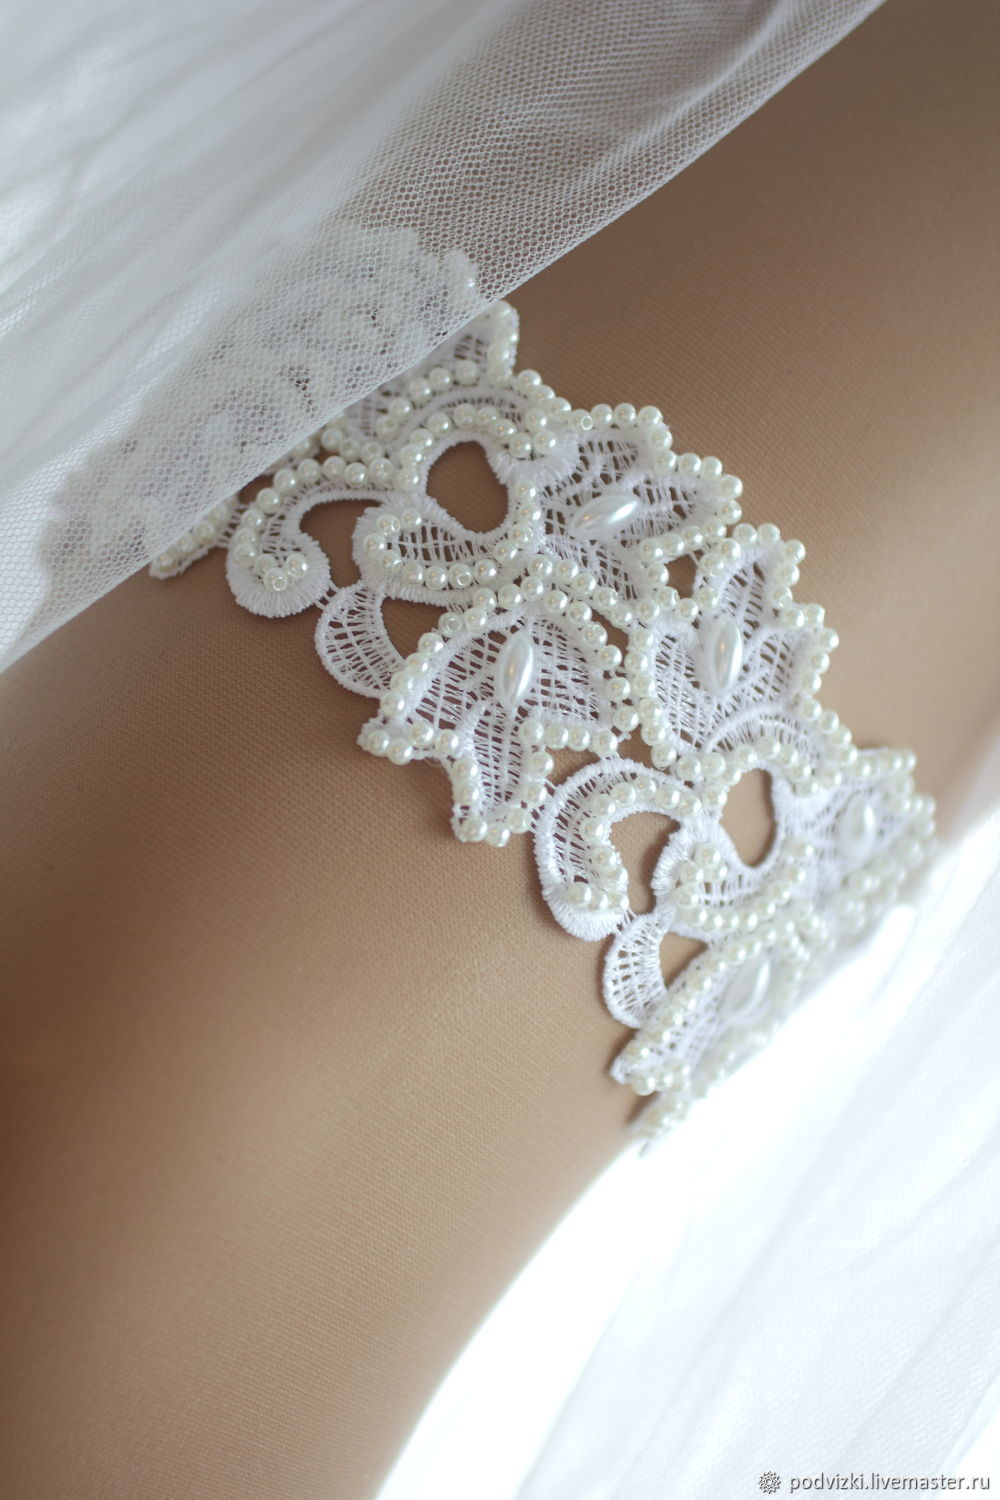 73dbe2d28 Buy Garter for the bride wedding Vintage · Clothing   Accessories handmade.  Garter for the bride wedding Vintage. Wedding Dreams.